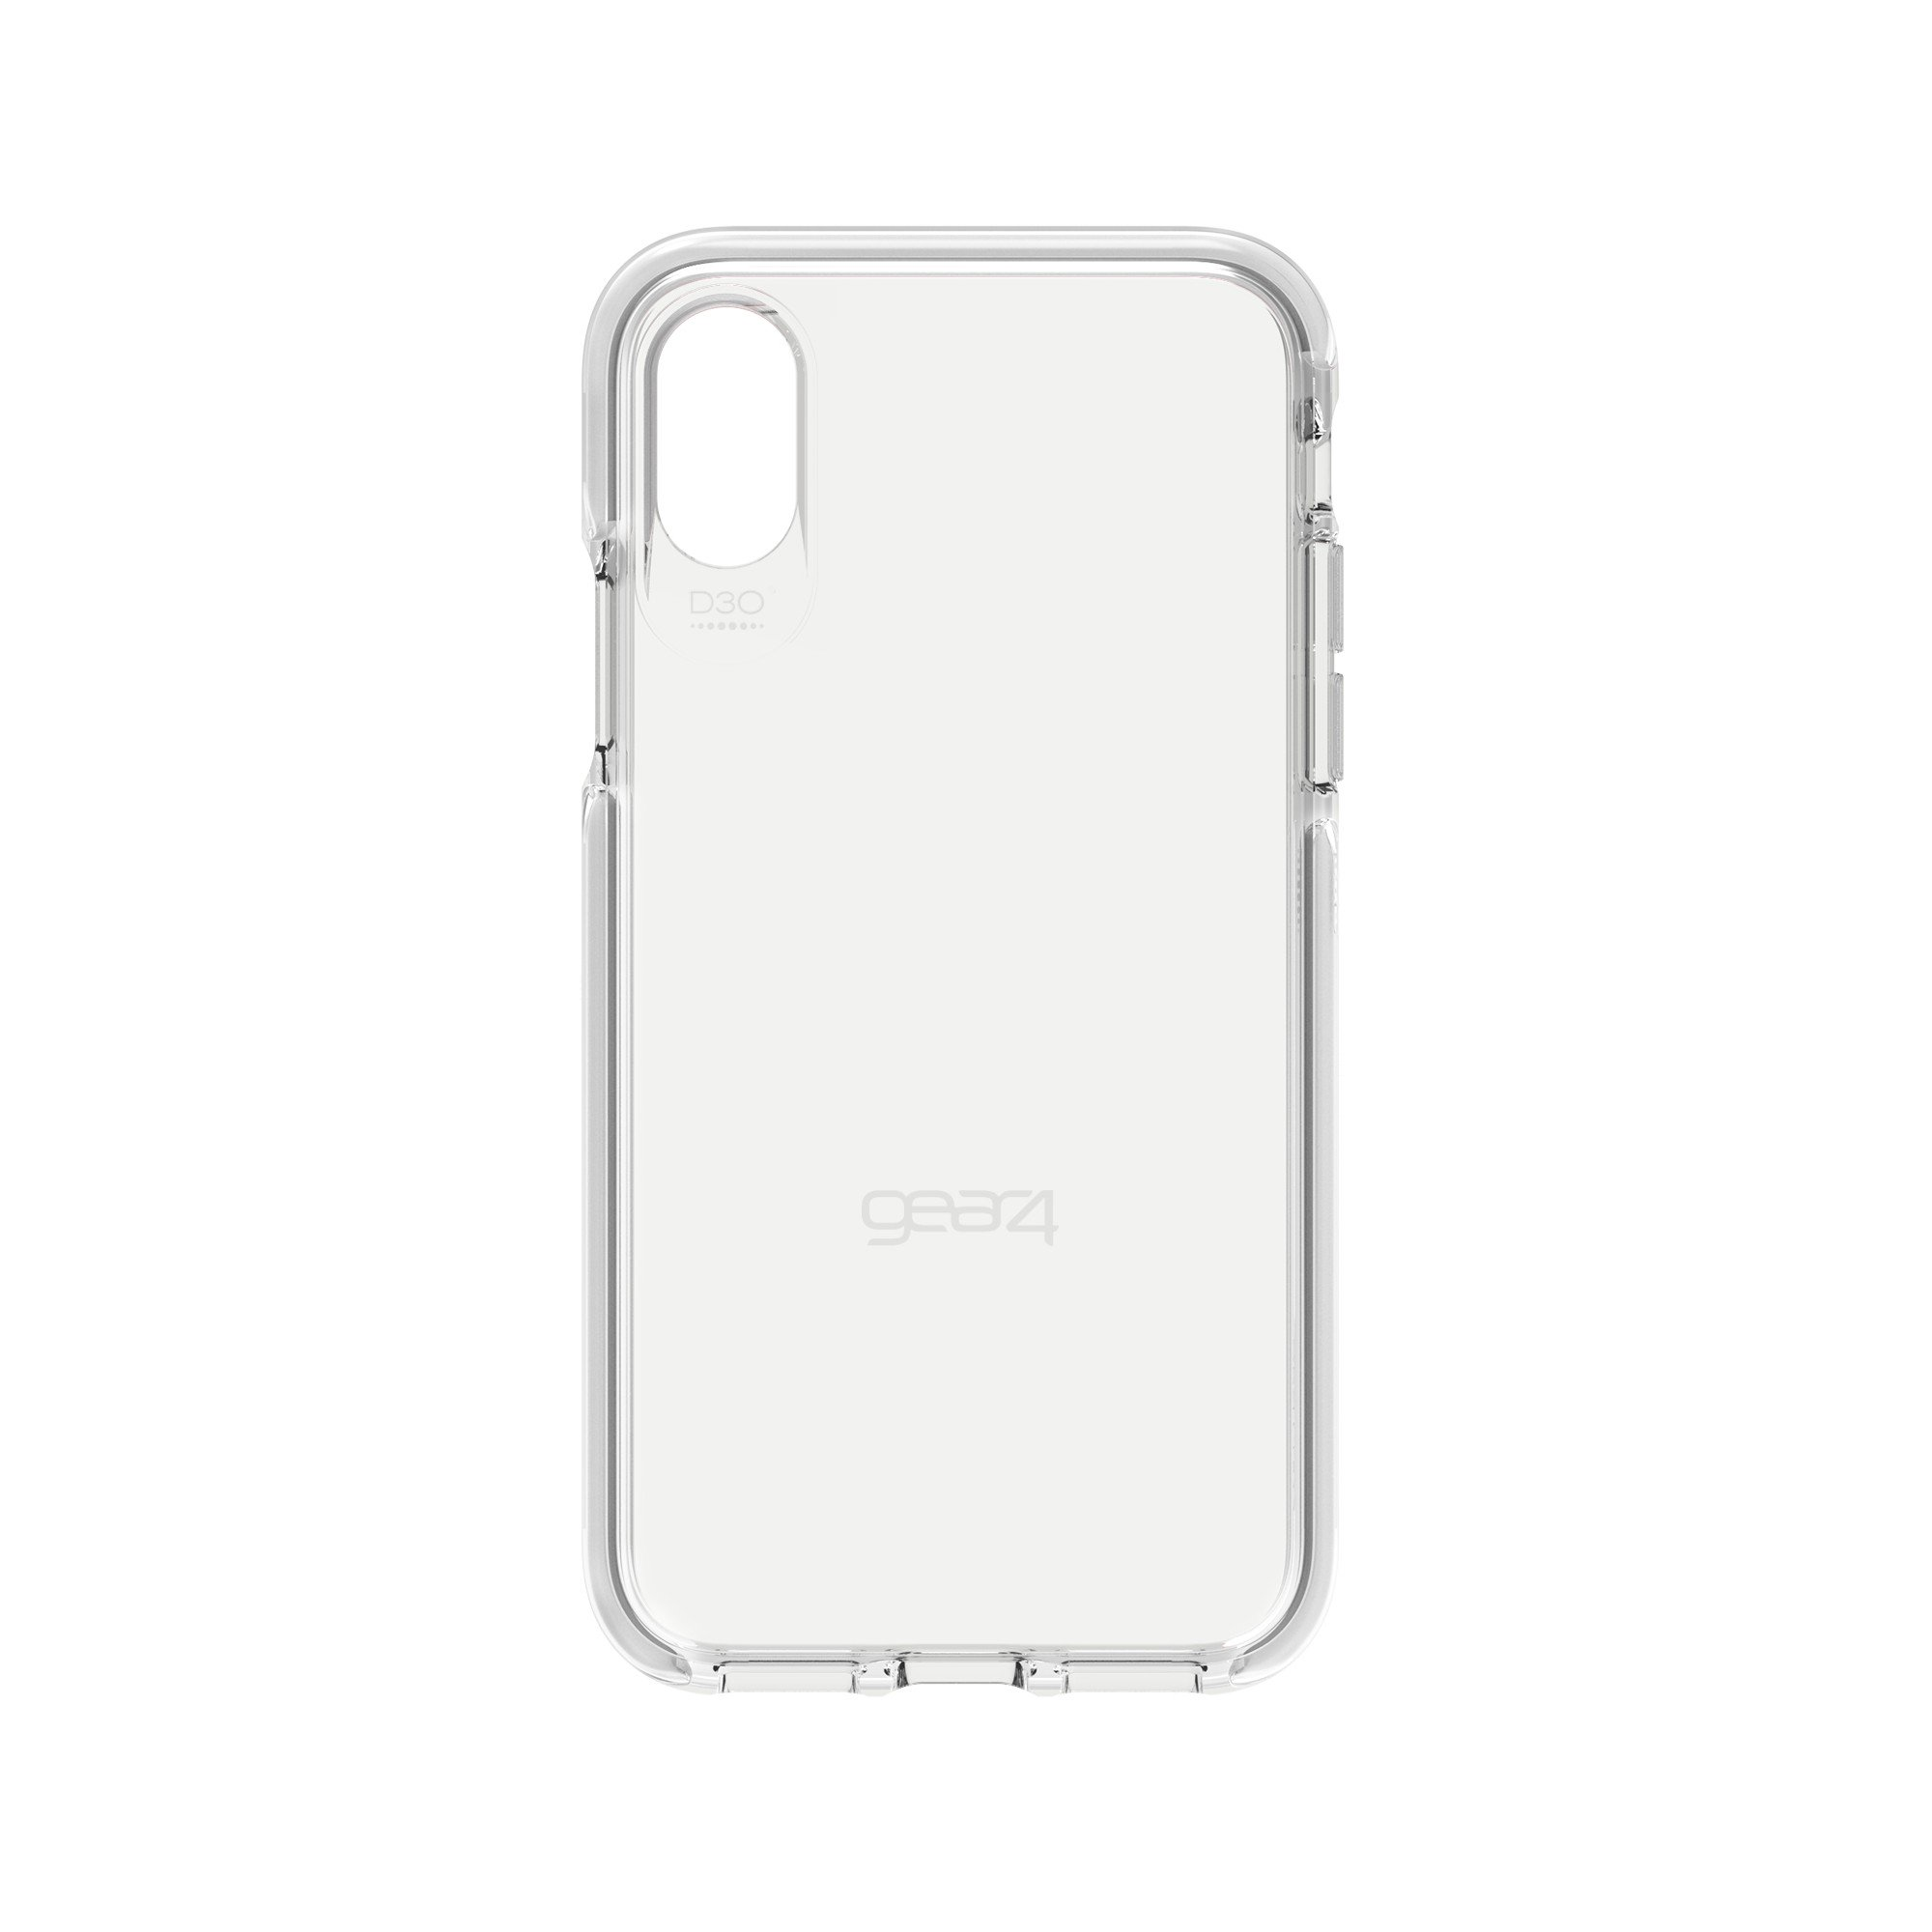 half off f9d16 7054b GEAR4 iPhone X/Xs D3O Clear/White Piccadilly case - IC8PICSVR